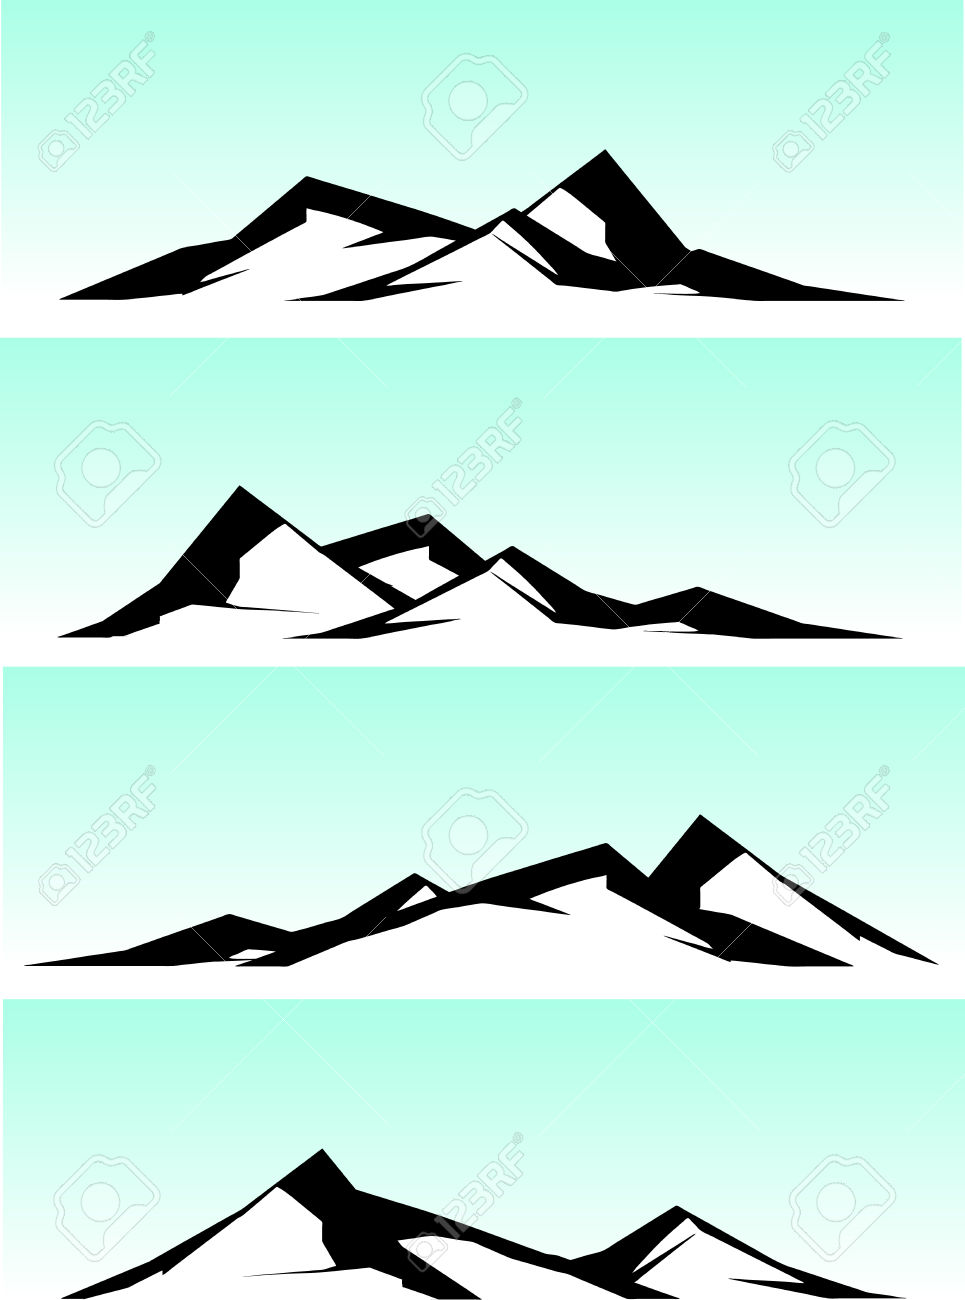 965x1300 Mountain Ridge Clipart Mountain Scenery